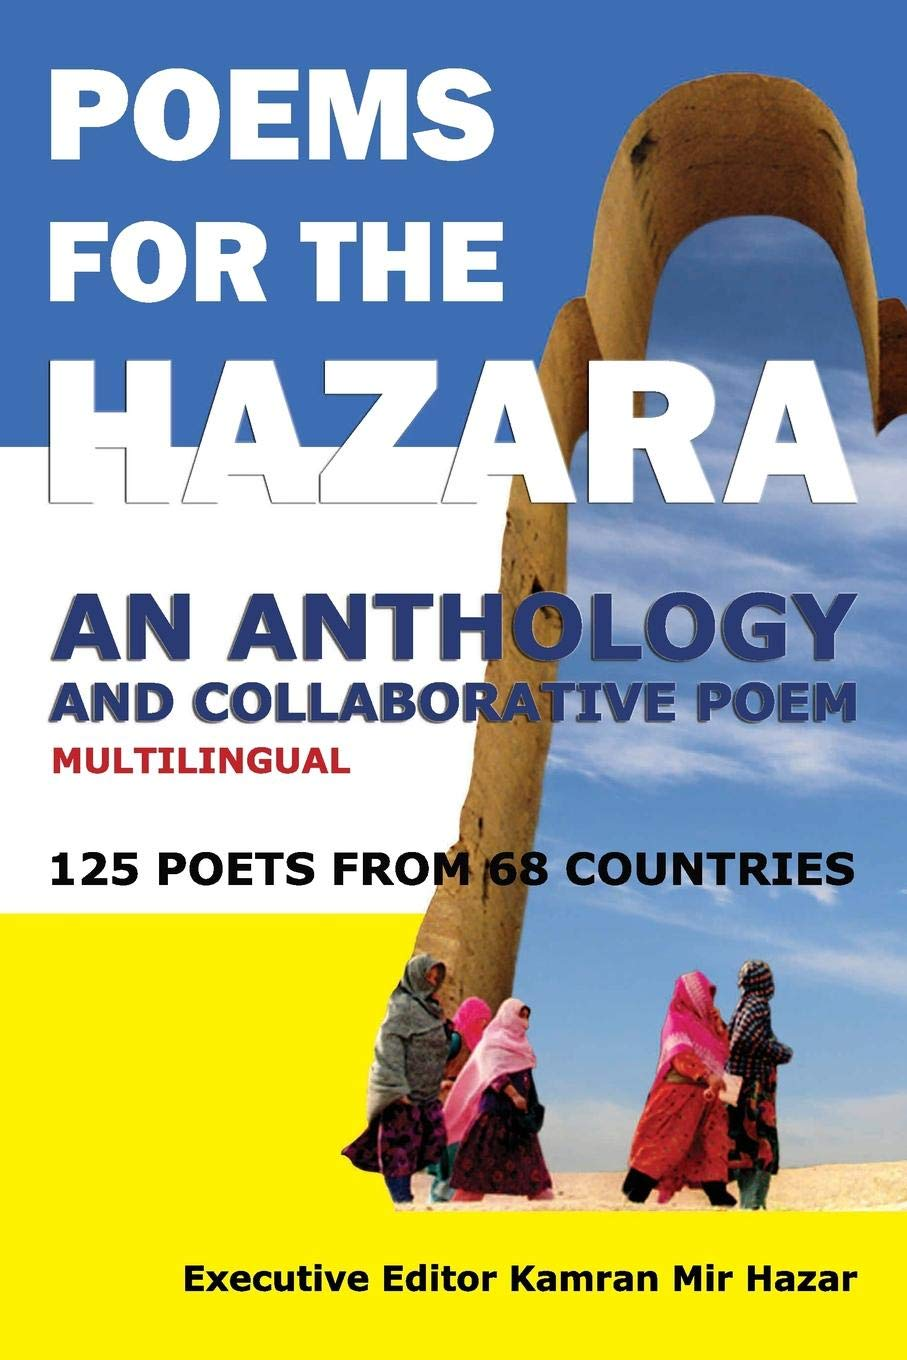 Poems For The Hazara  A Multilingual Poetry Anthology And Collaborative Poem By 125 Poets From 68 Countries